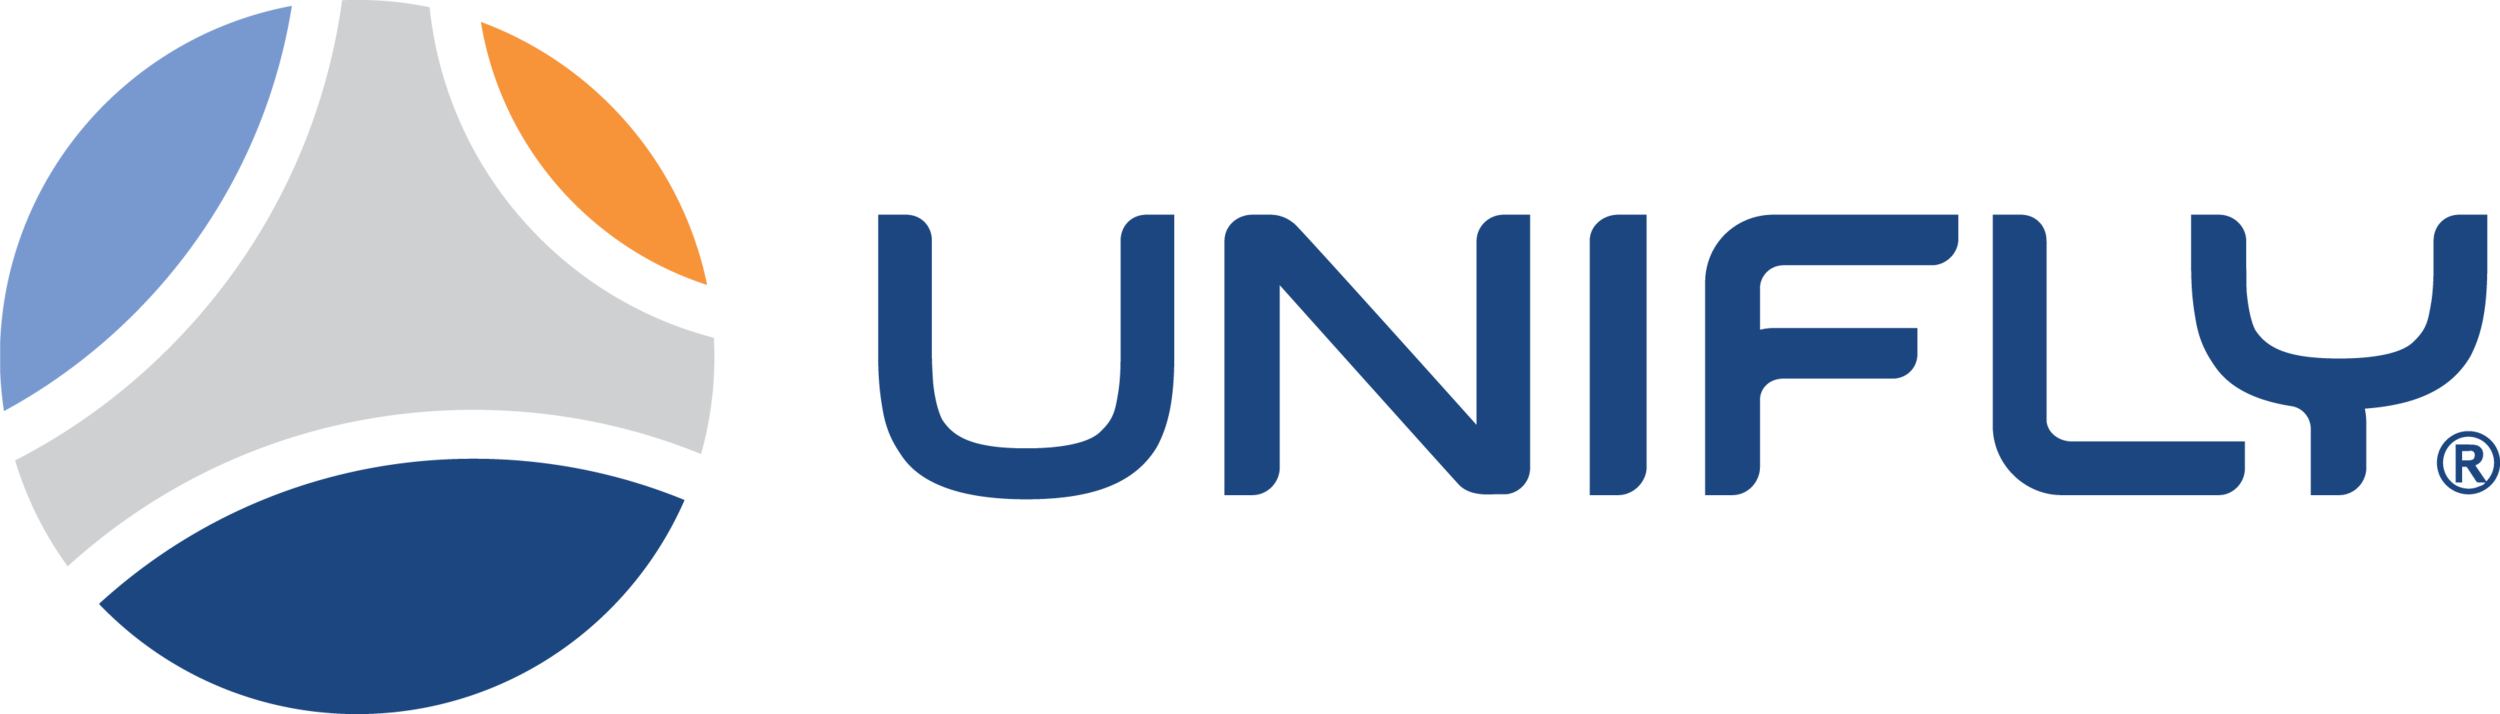 Unifly_Logo_RGB [Converted].png